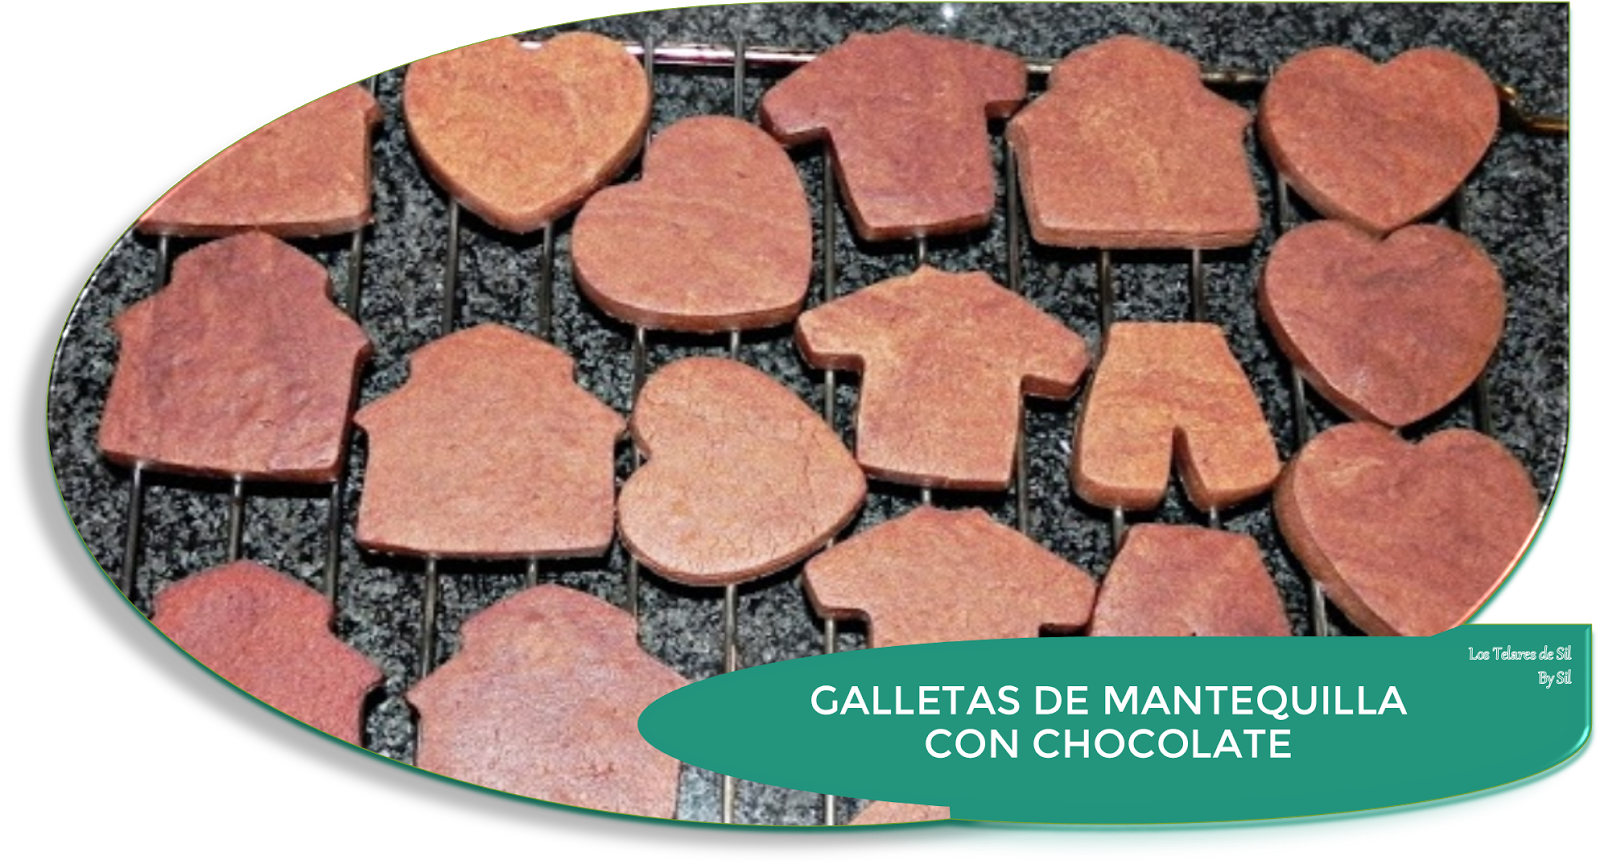 GALLETAS DE MANTEQUILLA CON CHOCOLATE